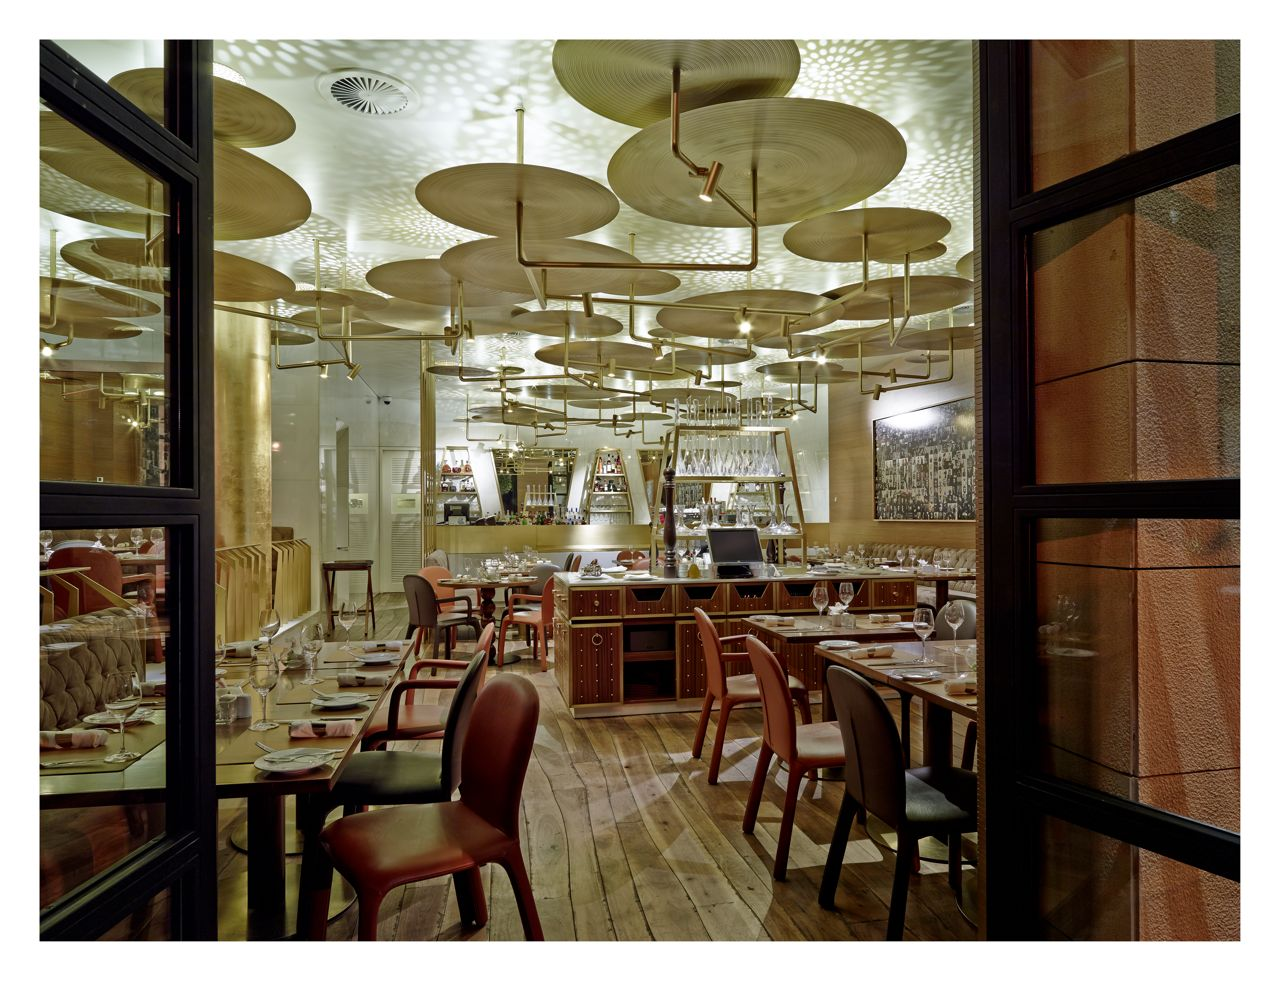 2013 restaurant & bar design awards: lebanon on the shortlist